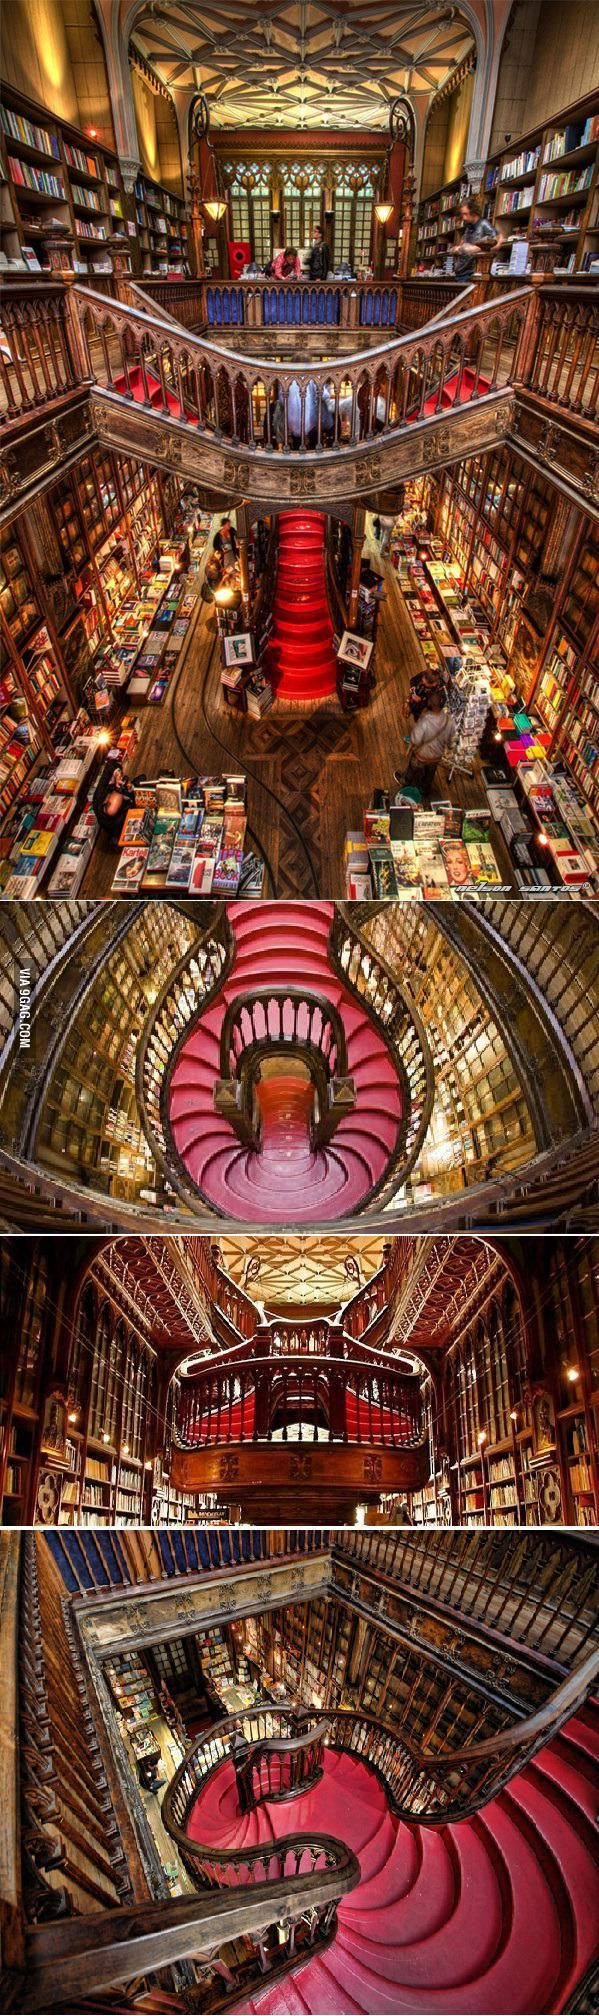 "Portugal's ""Livraria Lello & Irmão"" Is Possibly The Most Beautiful Bookstore In The World #Portugal"